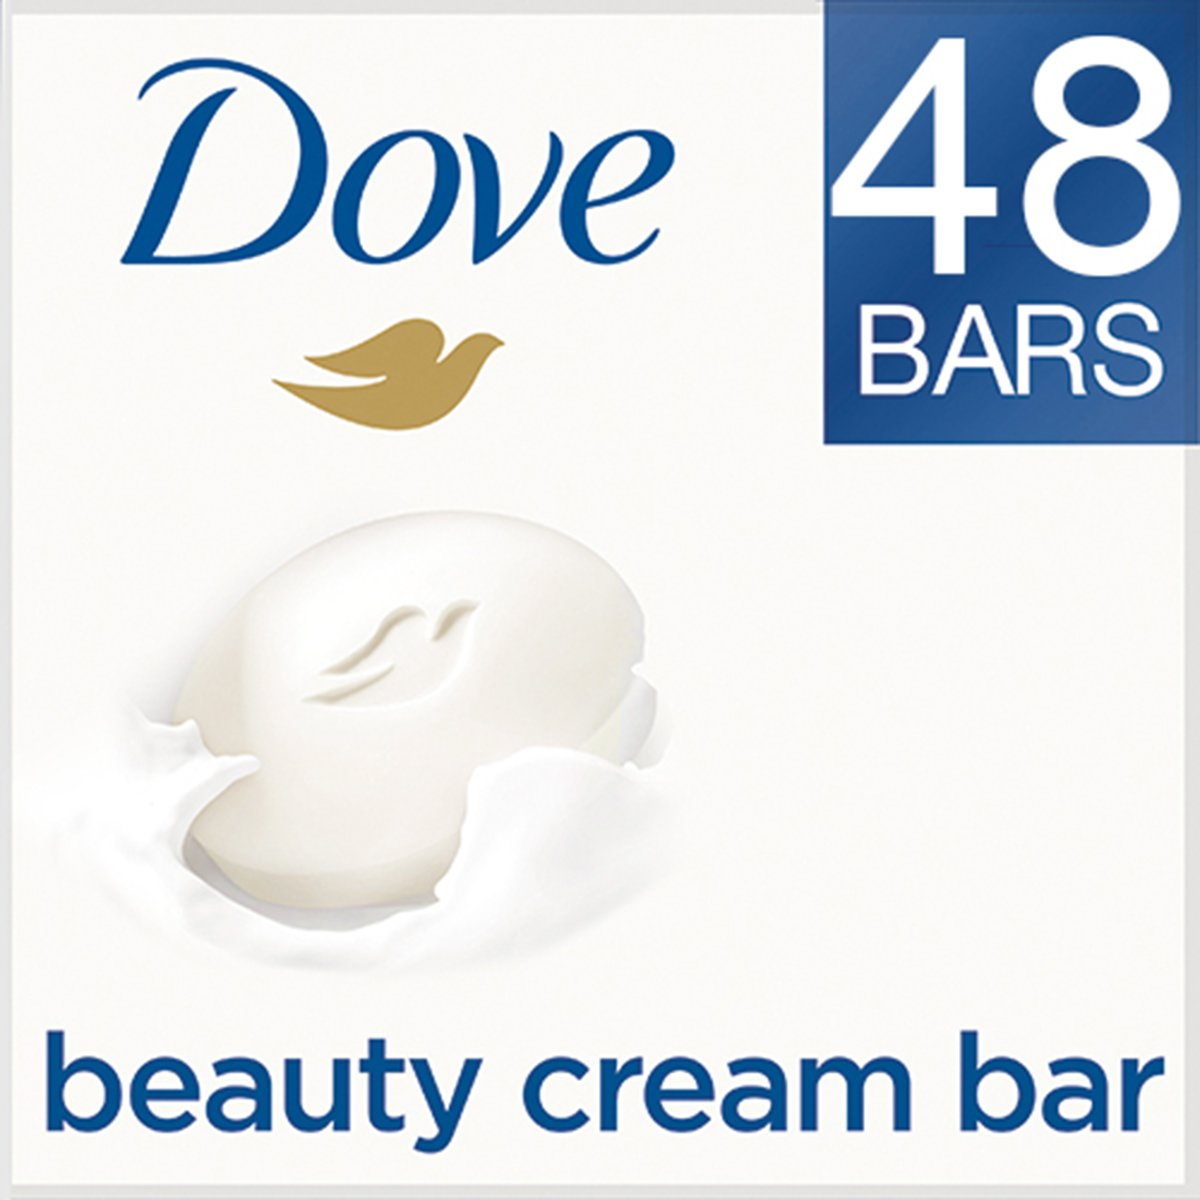 Dove Beauty Cream Original - 48 stuks - Zeep